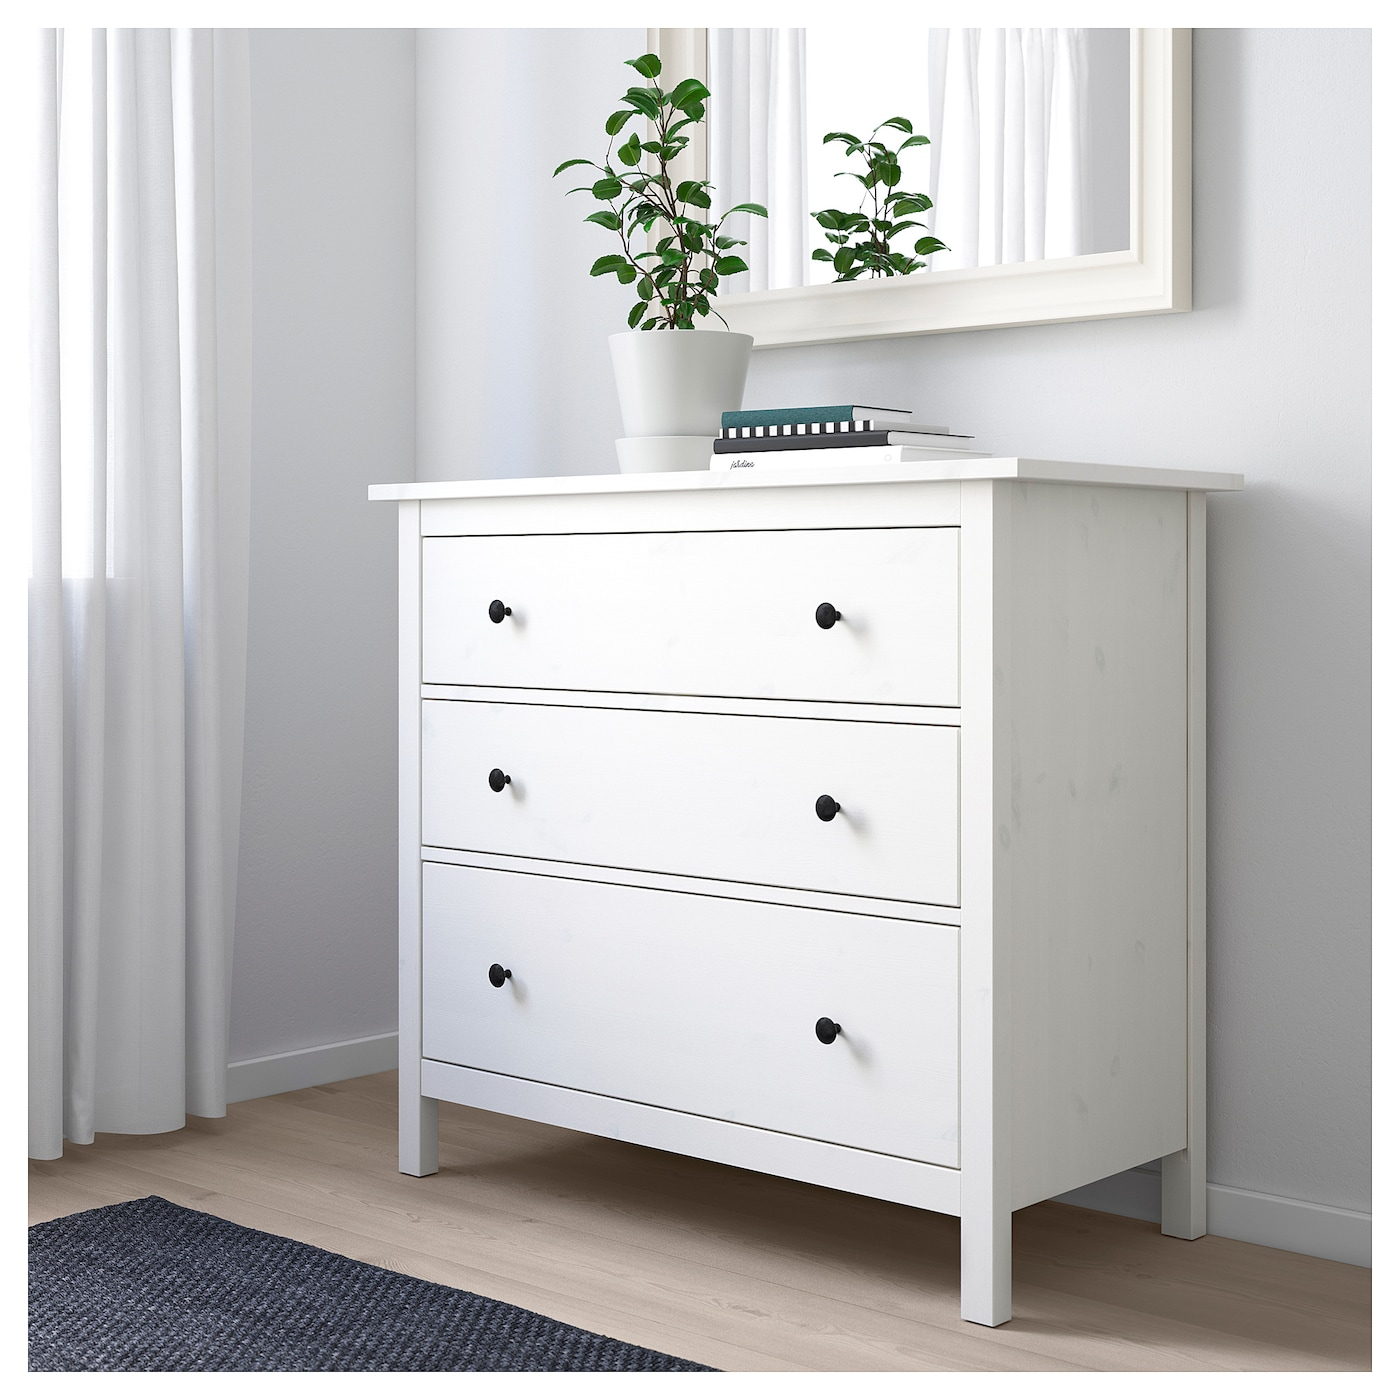 Hemnes chest of 3 drawers white stain 108 x 96 cm ikea for Ikea comodino hemnes